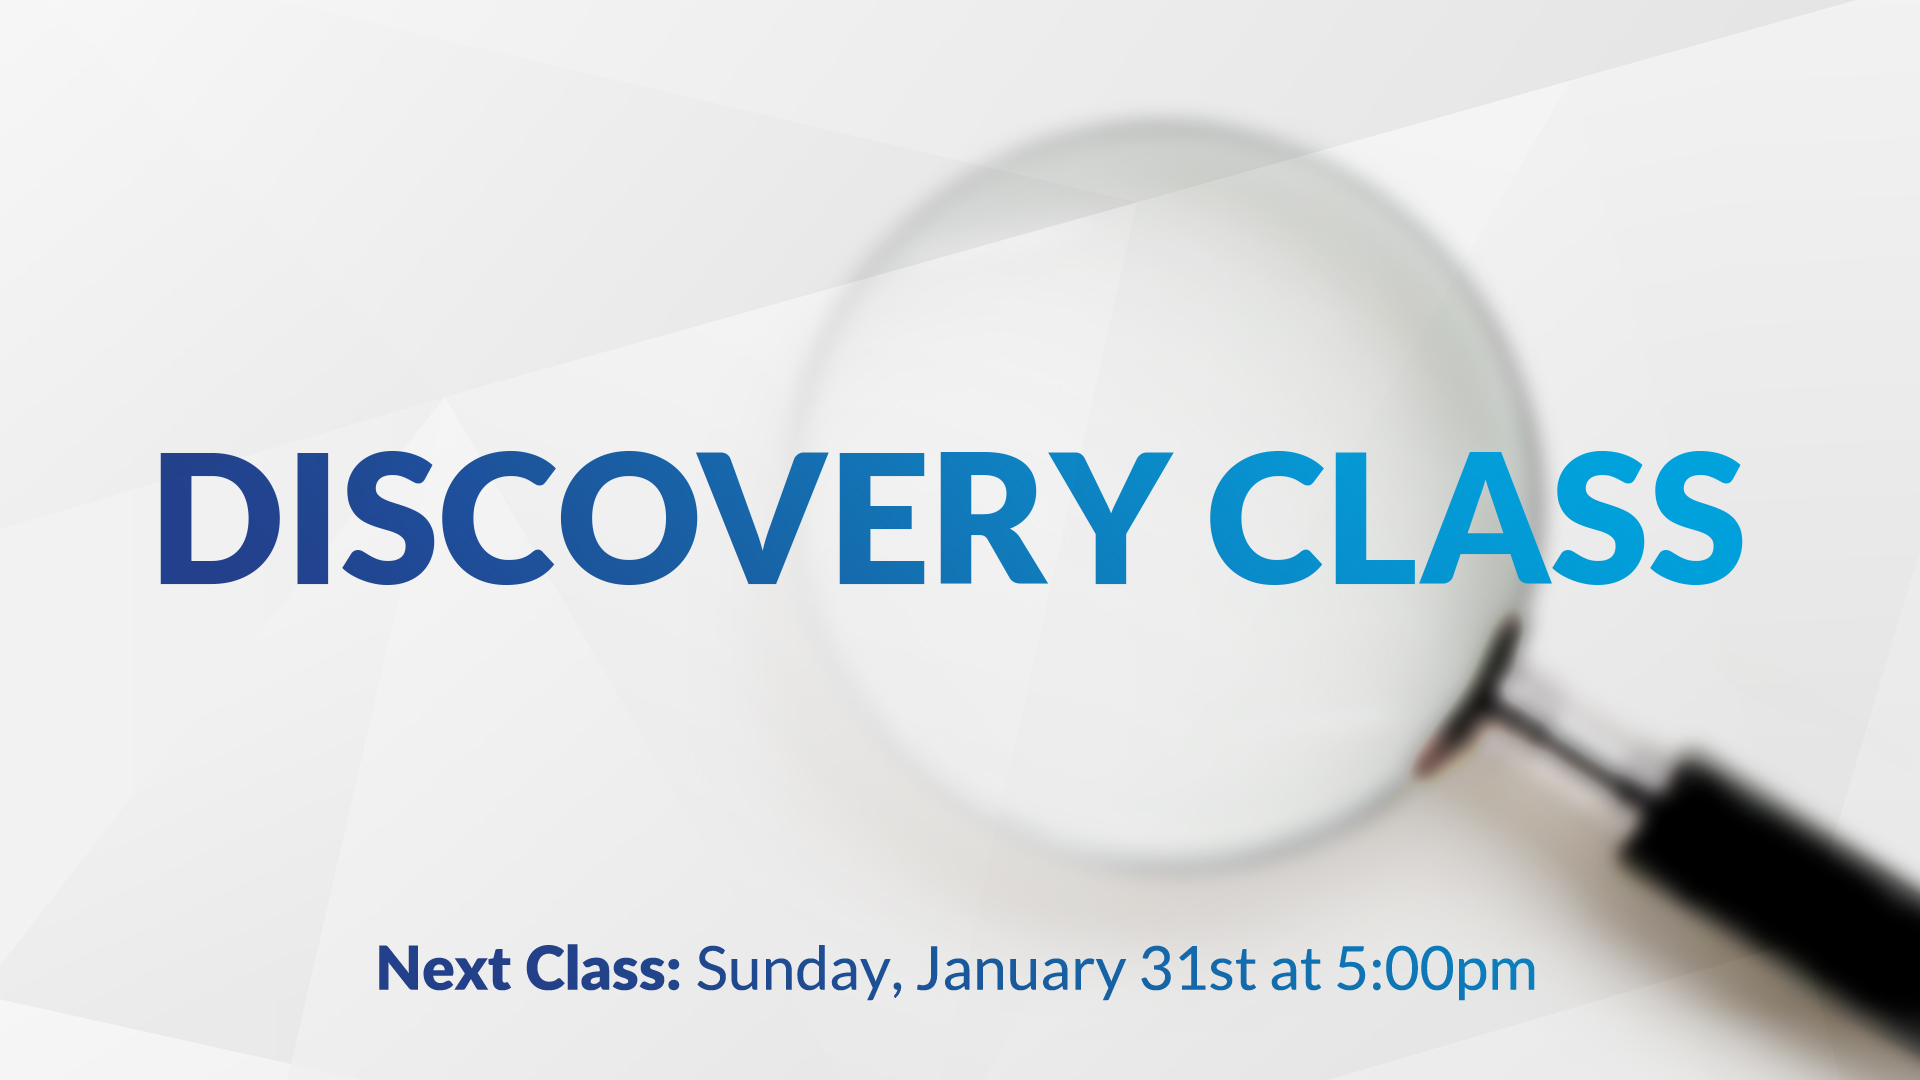 Discovery Class Register Here